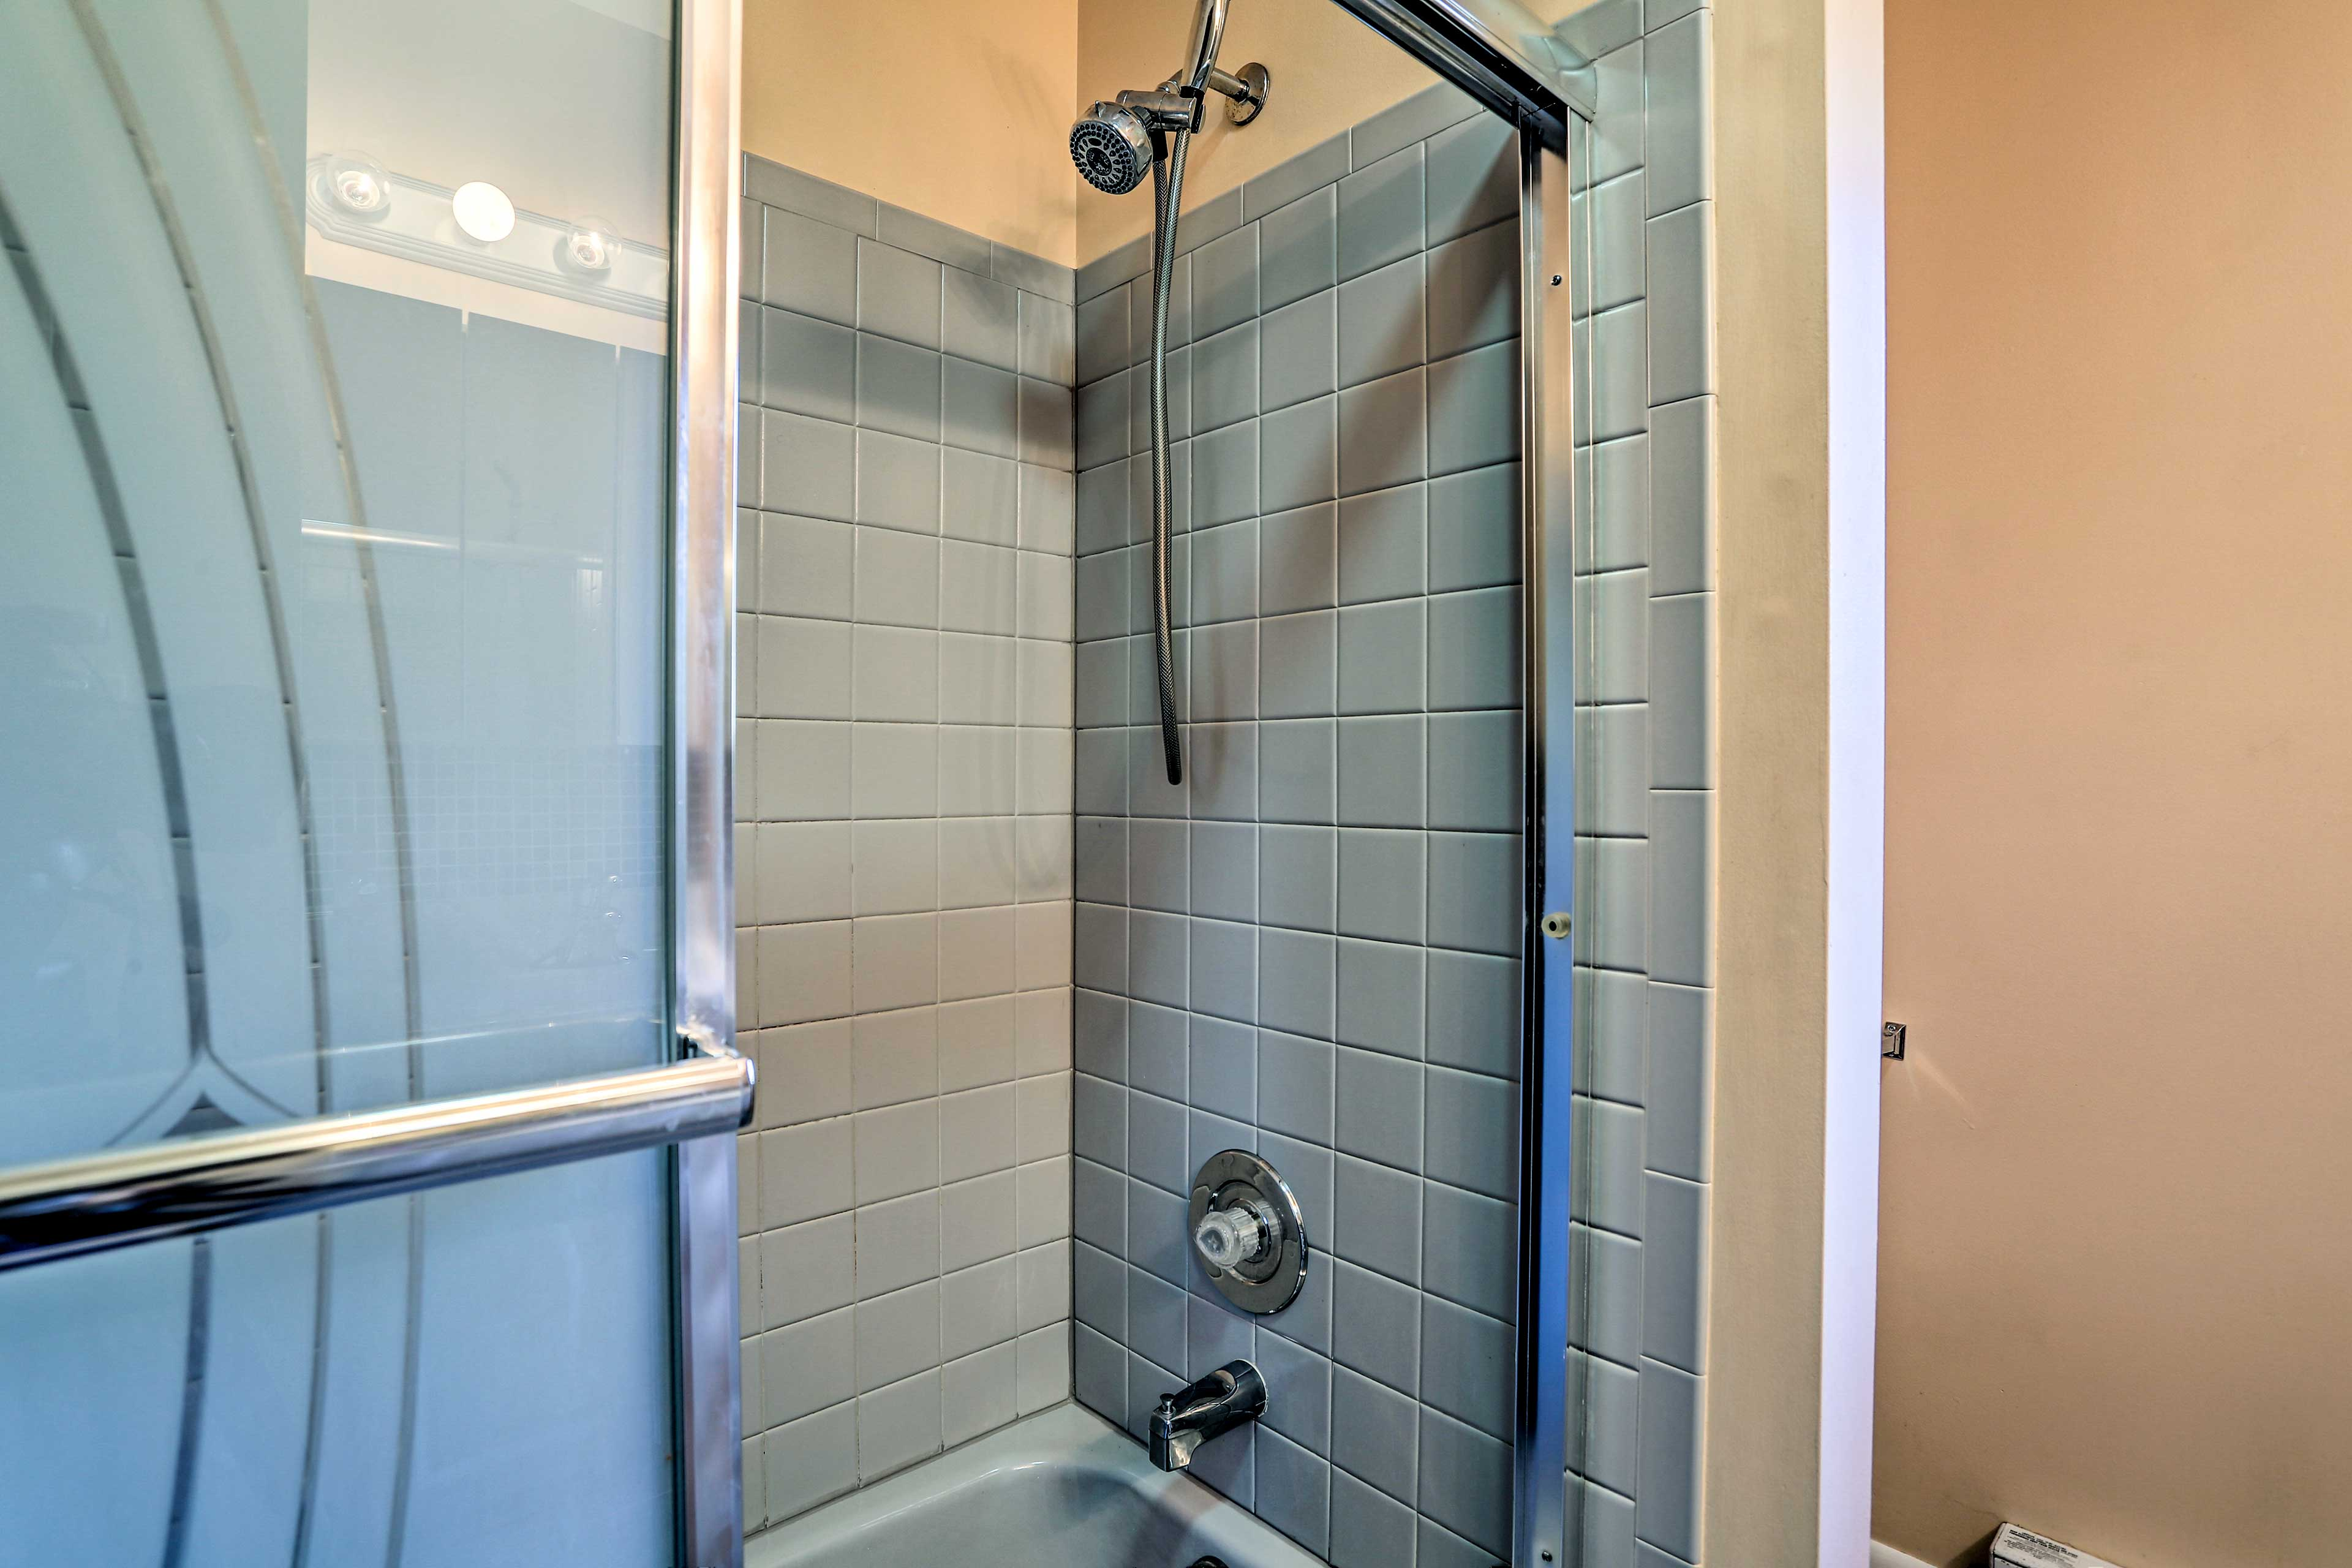 It's complete with a shower/tub combo.